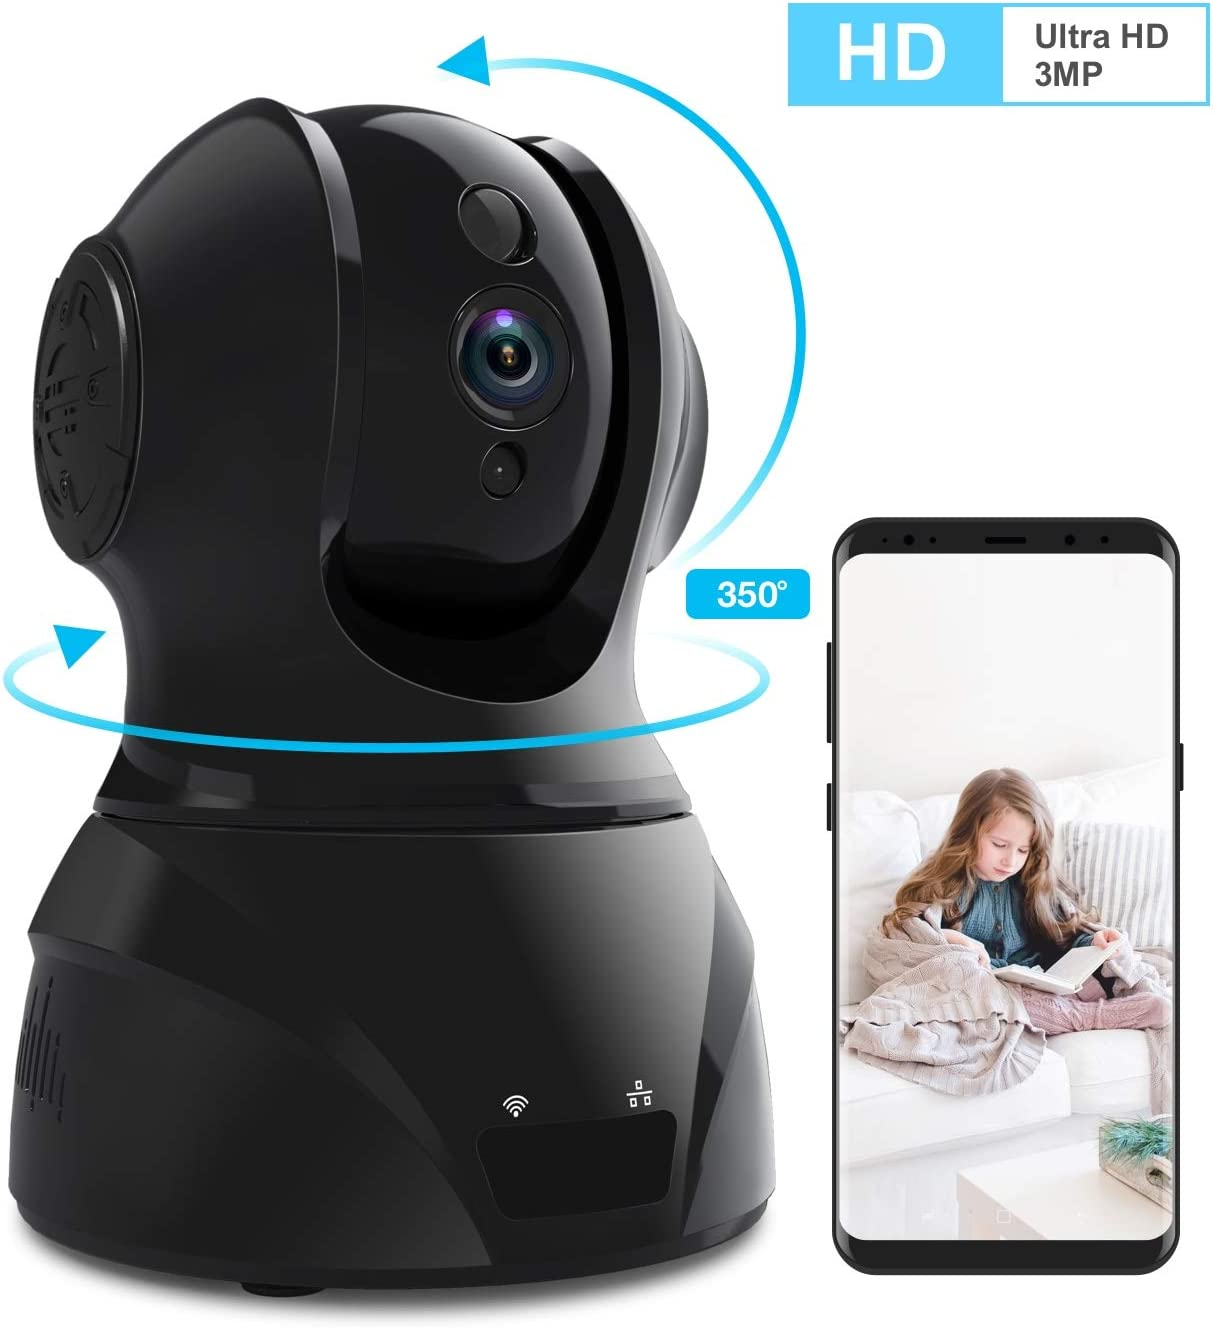 Home Security Camera Wi-Fi IP Camera, Wonbo Wireless HD 3MP Pan Tilt Zoom 2.4G with 2-Way Audio, Motion Detection, Night Vision, Auto-Cruise, Remote Monitor for Baby Pet Elder Android iOS